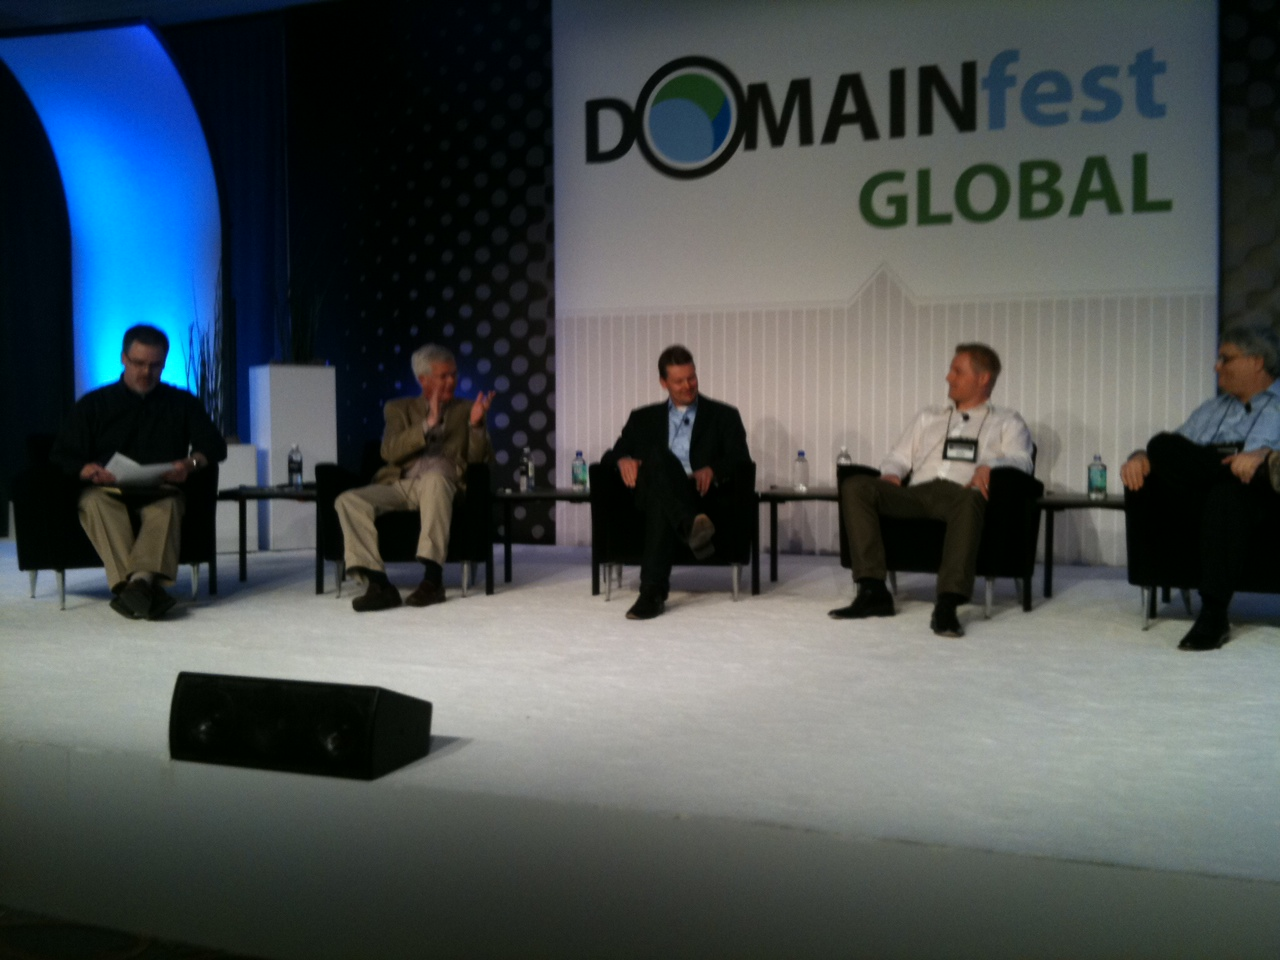 New TLDs Panel: DomainFest